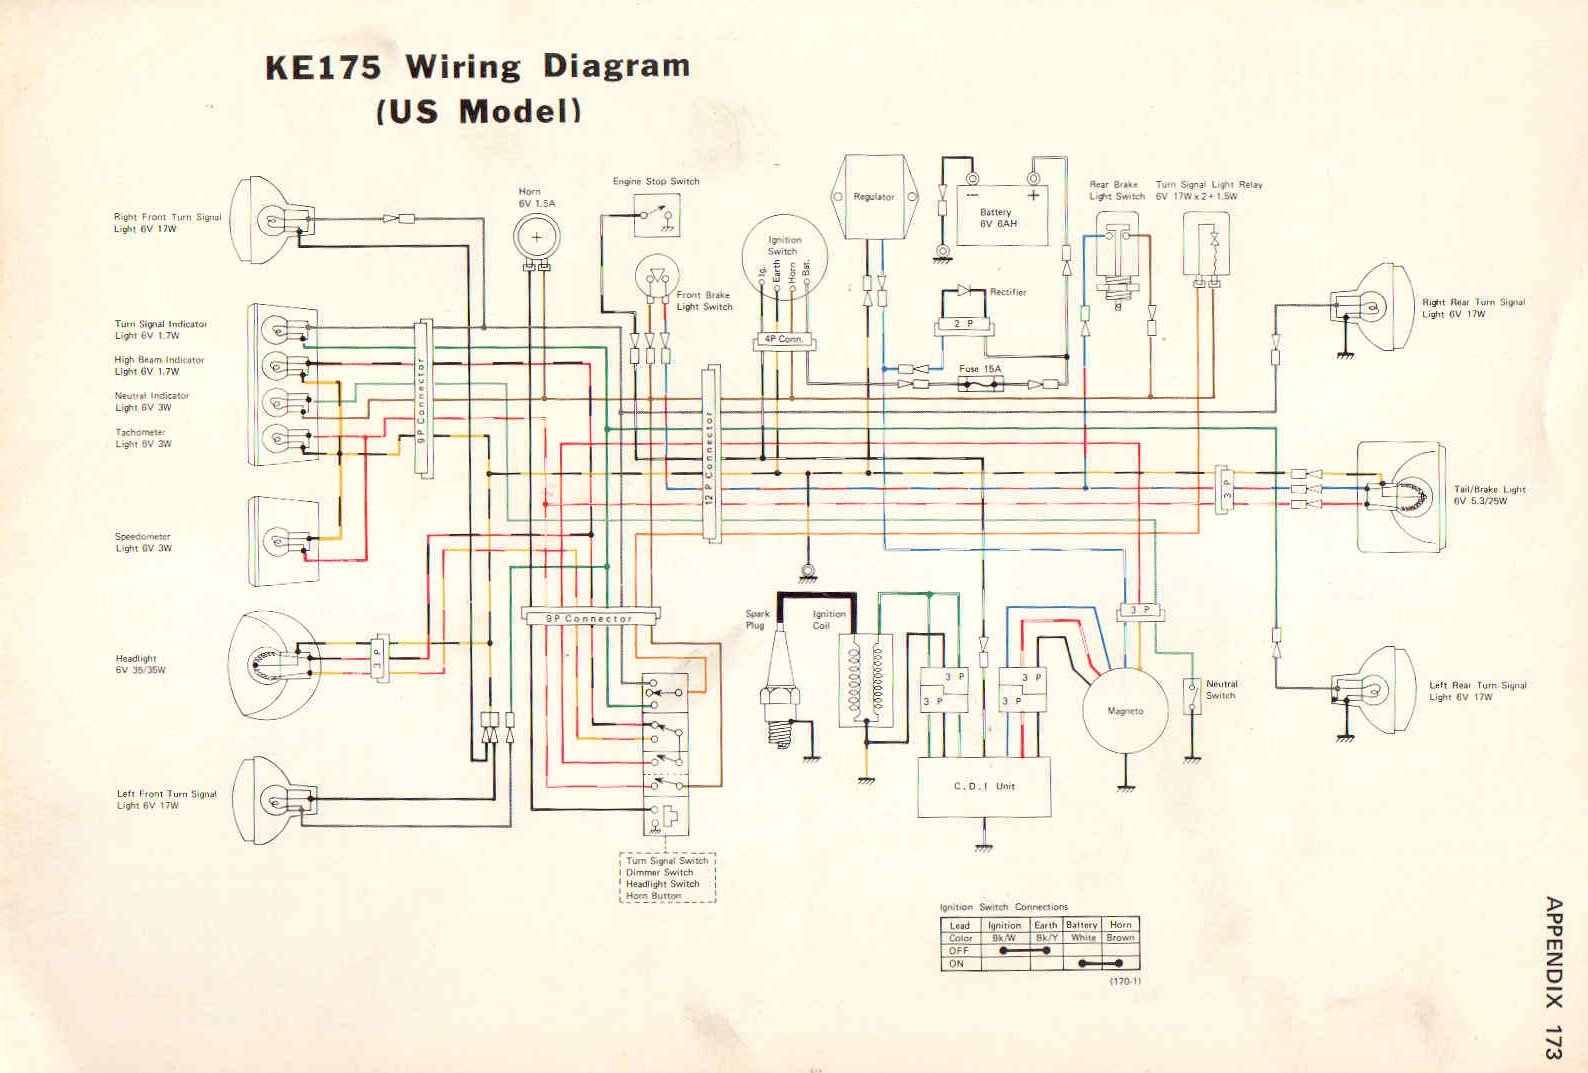 vt700c wiring diagram wiring diagrams schematics rh alexanderblack co 1986 honda shadow vt700 wiring diagram 1997 Honda Radio Wire Diagram